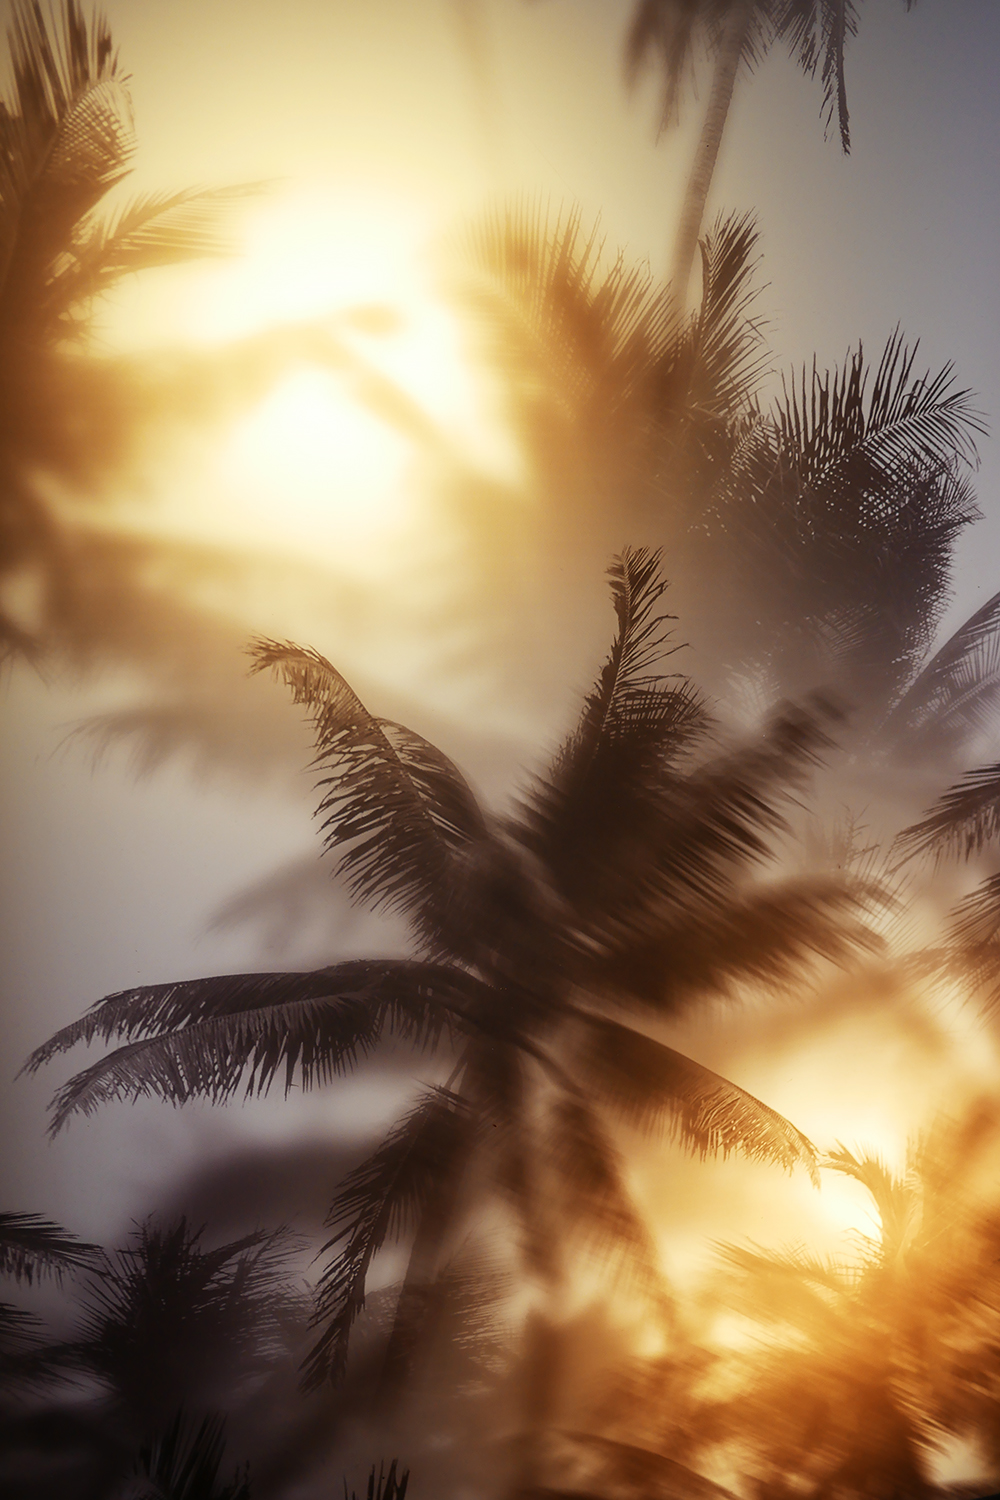 ISLAND-poke-decals-broadgate--lights-cool-palm-tree-details-graphics-design